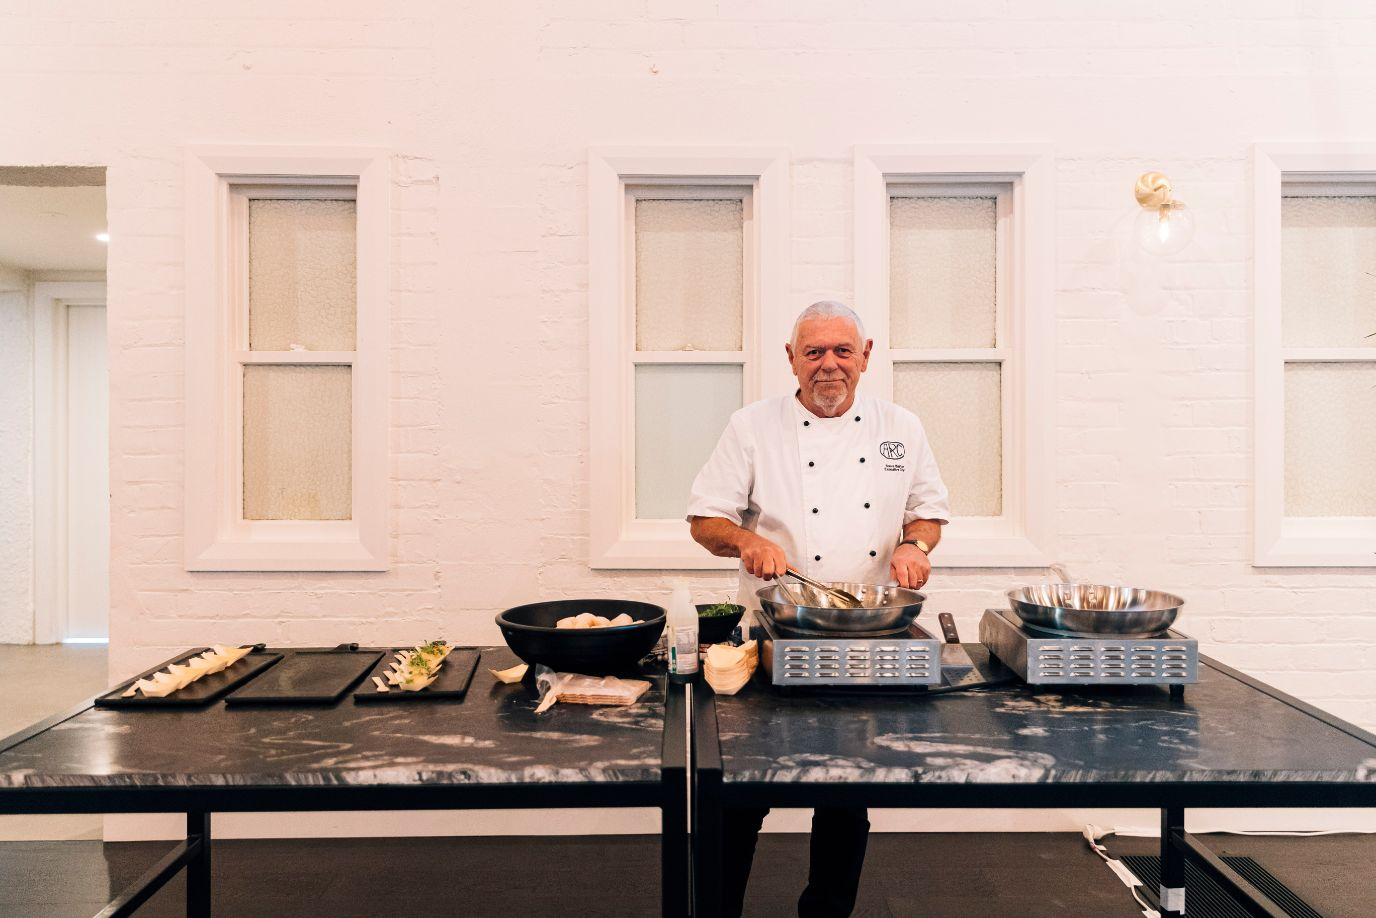 Our Executive Chef, Steve Barton, primed & ready at a live cooking station - a fun feature for any e